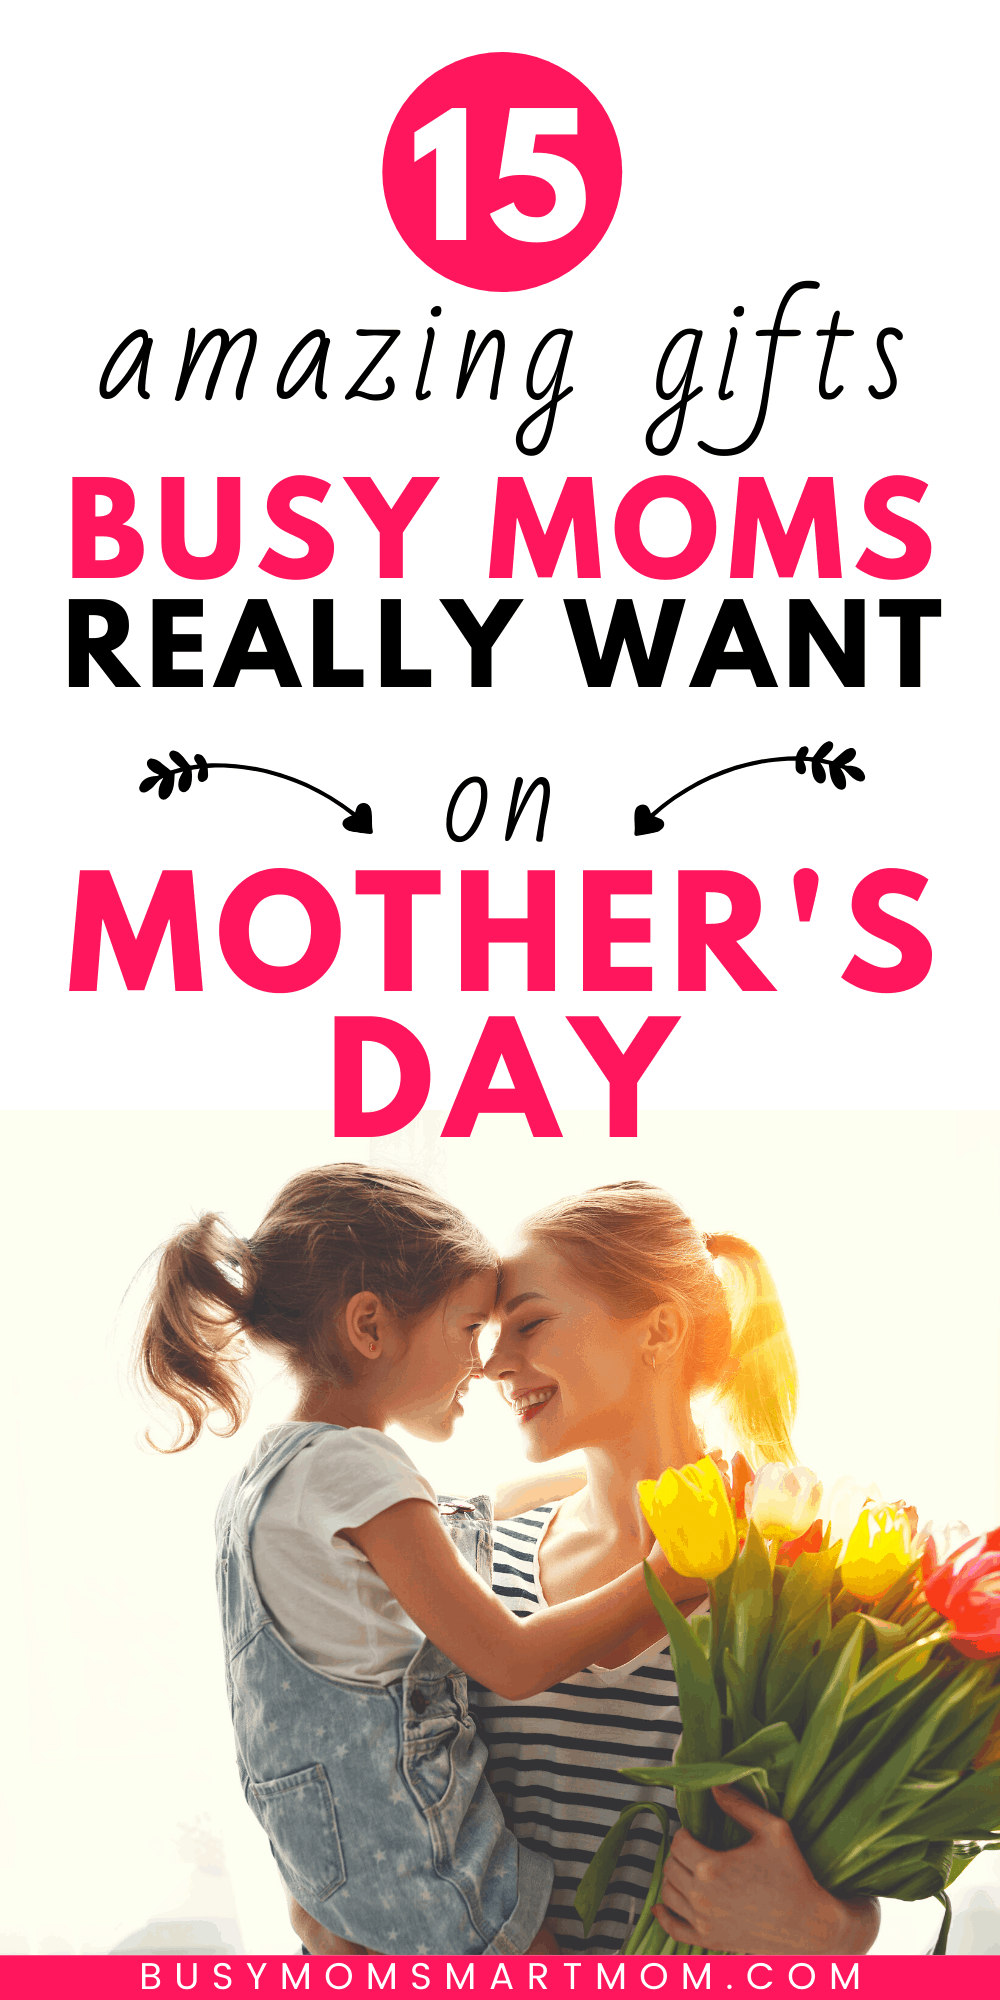 best gifts for busy moms mother's day